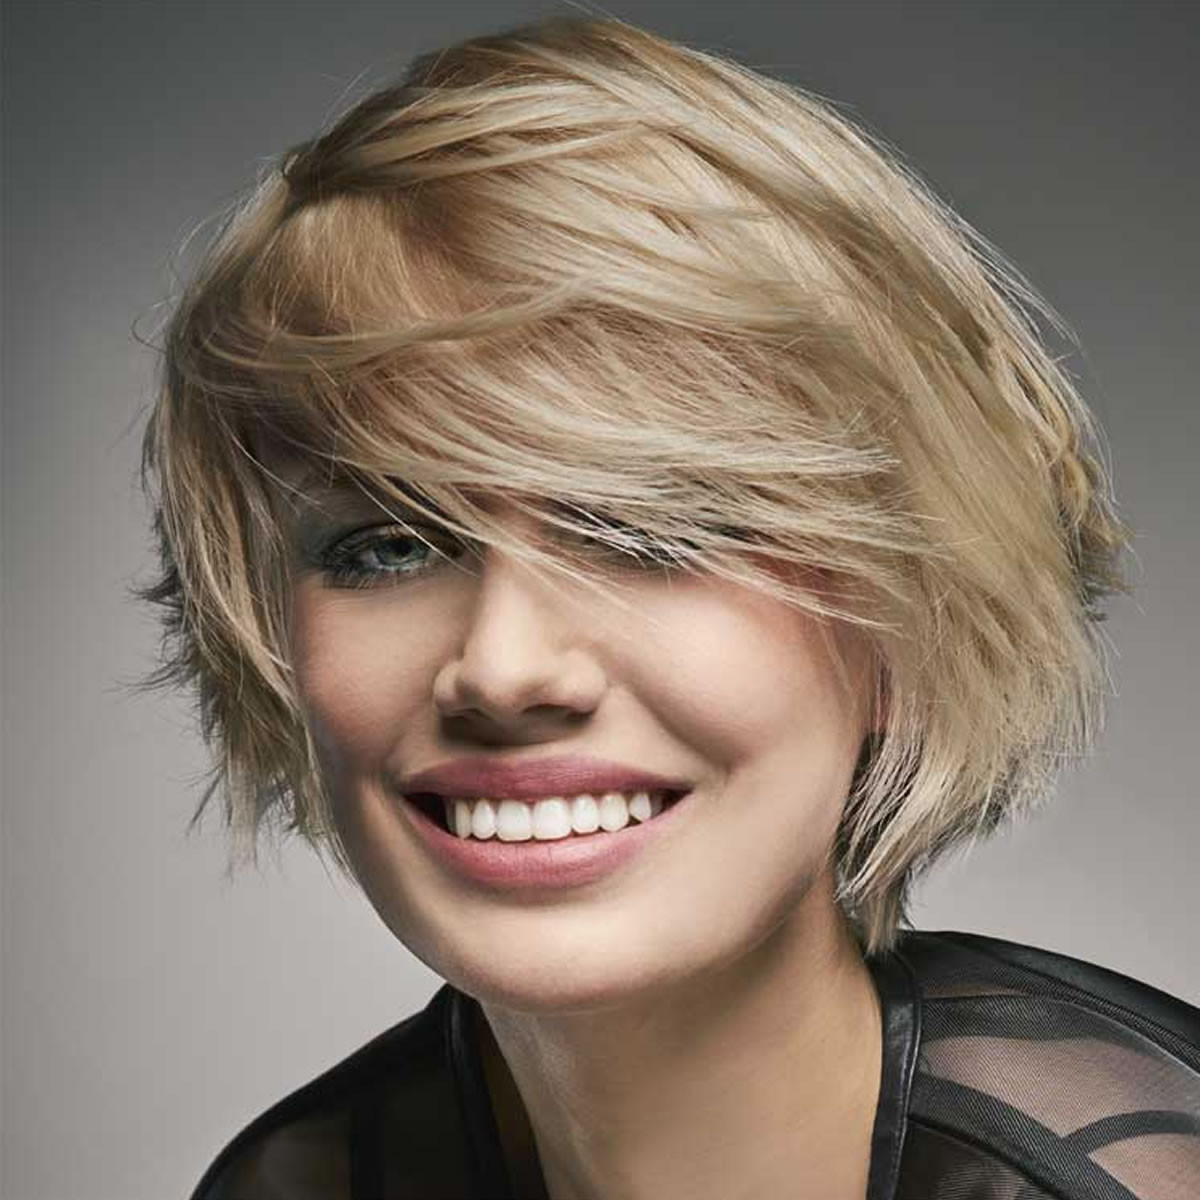 Bob Hairstyles Images  The Best 30 Short Bob Haircuts – 2018 Short Hairstyles for